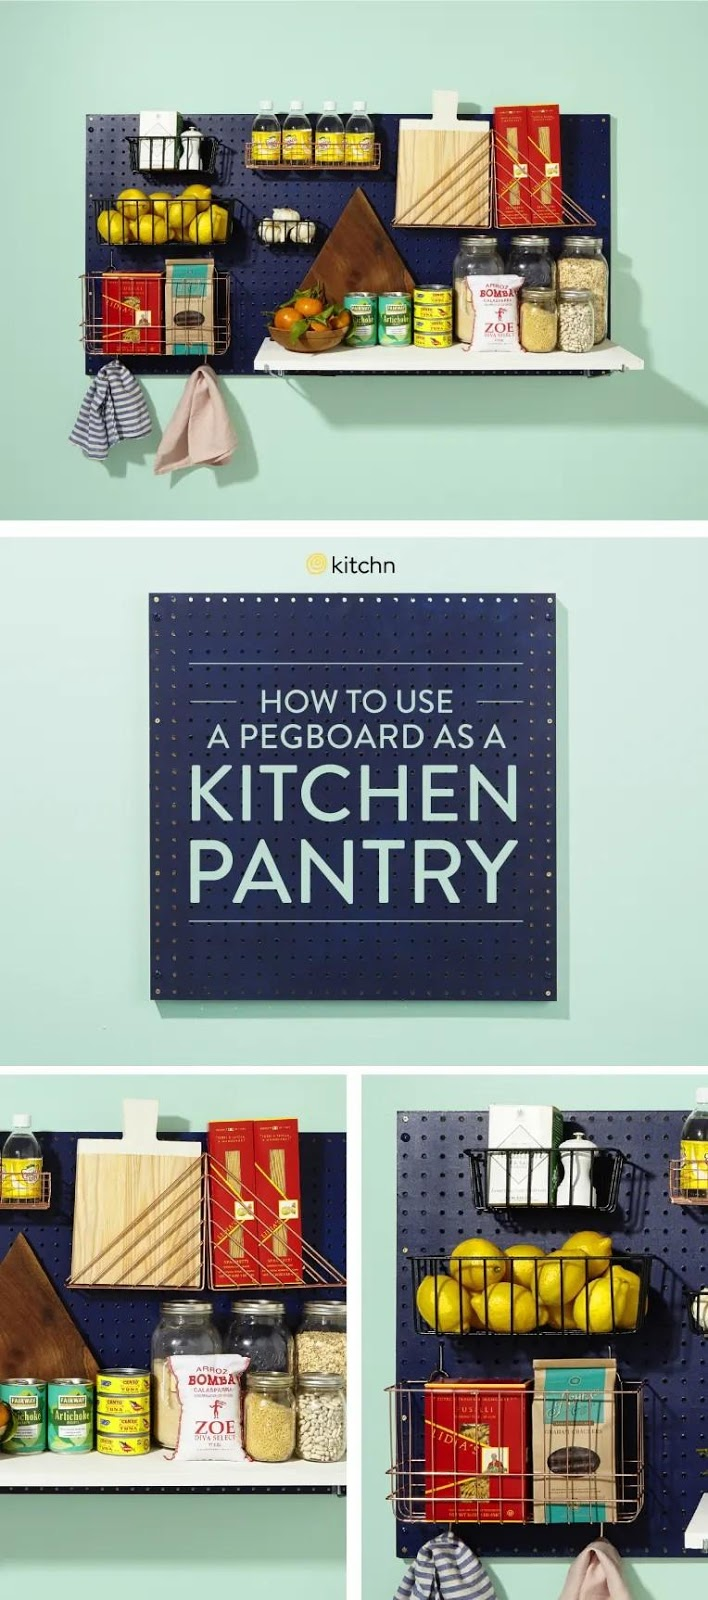 6. Pegboard Pantry by simphome.com